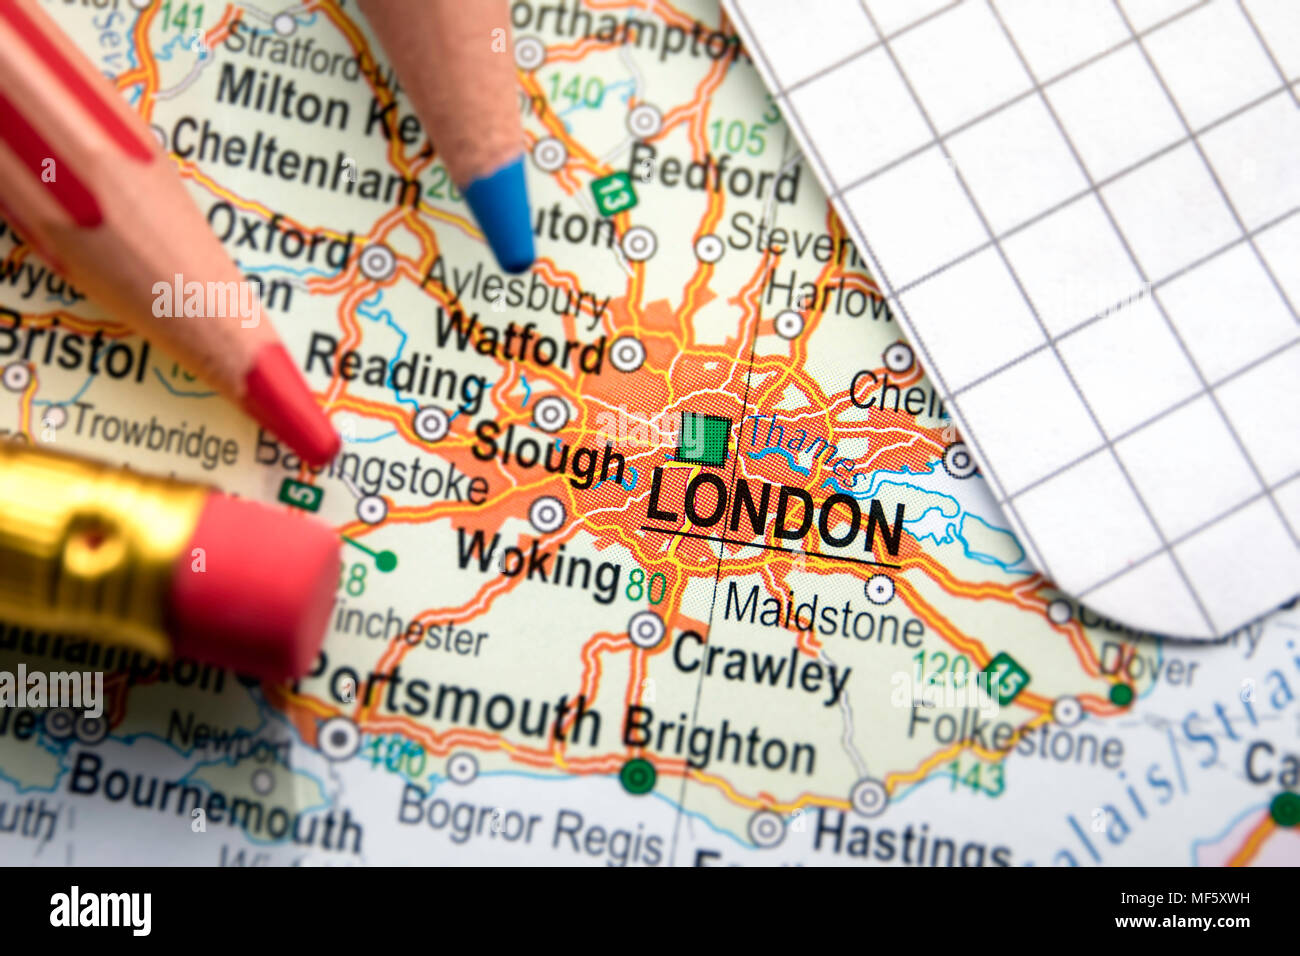 London Center Map.London City Of Great Britain In The Center Of The Geographic Map